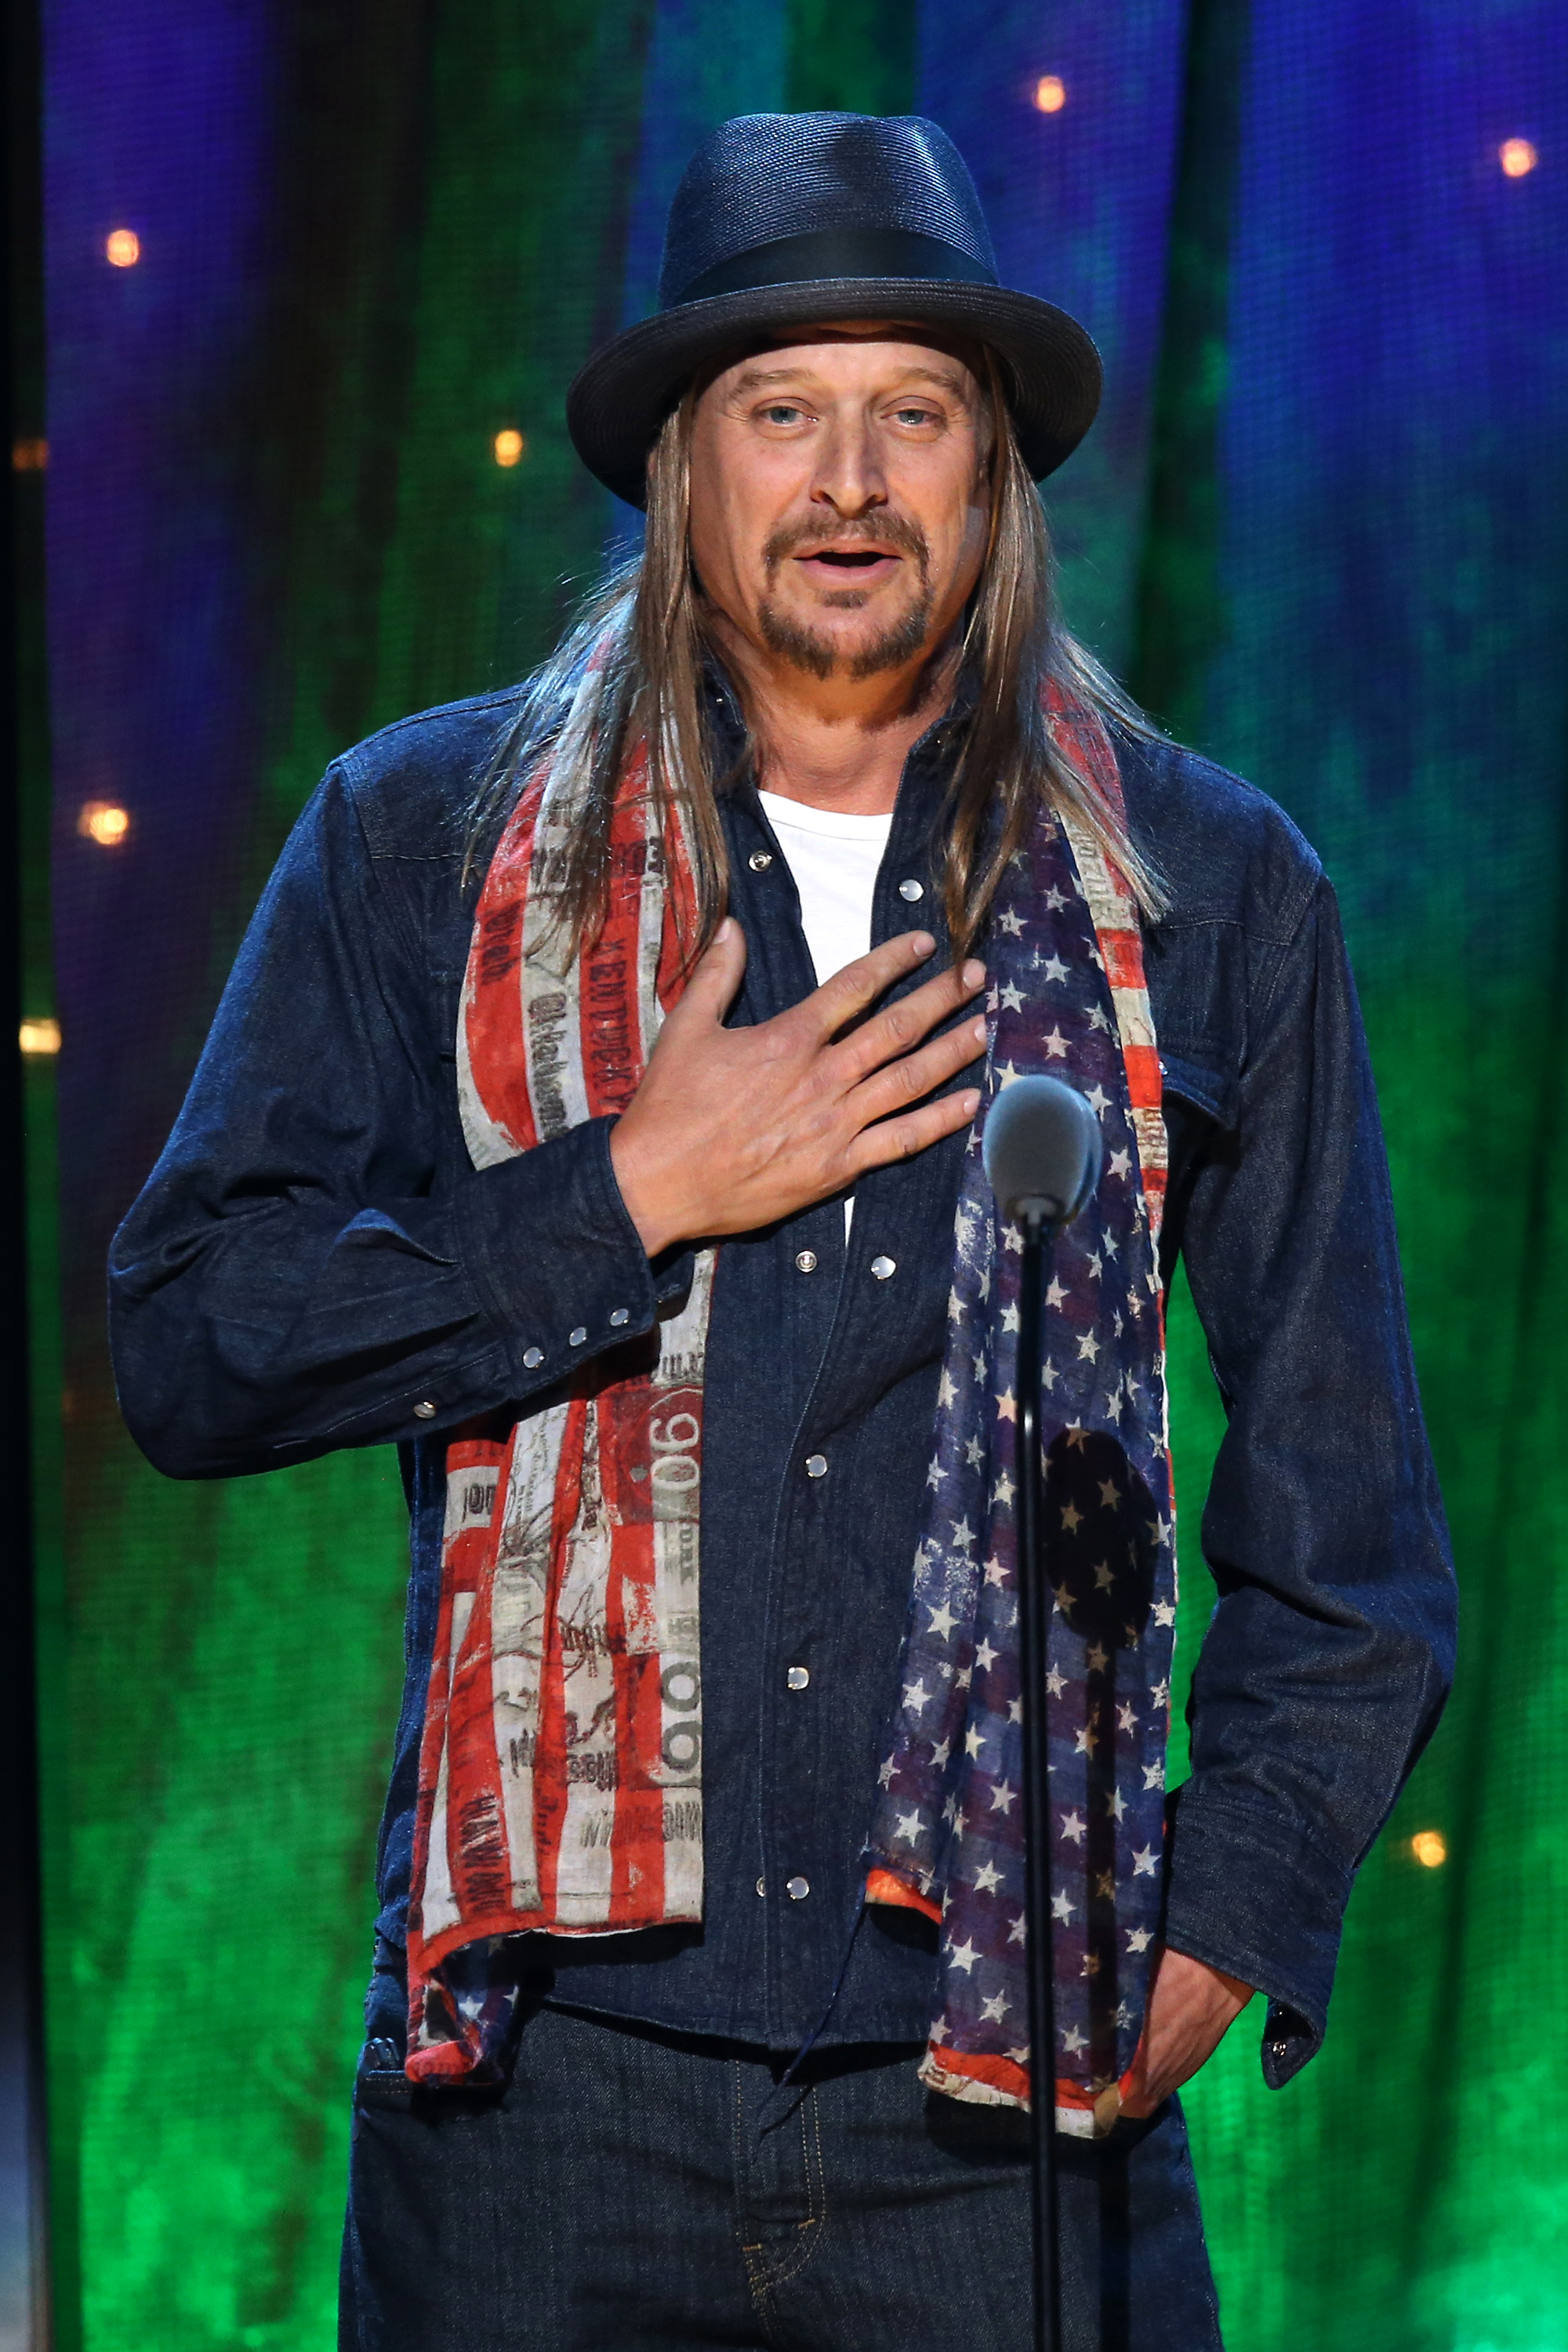 """NEW YORK, NEW YORK - APRIL 08: Kid Rock inducts Cheap Trick at the 31st Annual Rock And Roll Hall Of Fame Induction Ceremony at Barclays Center on April 8, 2016 in New York City. (Photo by Kevin Kane/WireImage for Rock and Roll Hall of Fame)"""